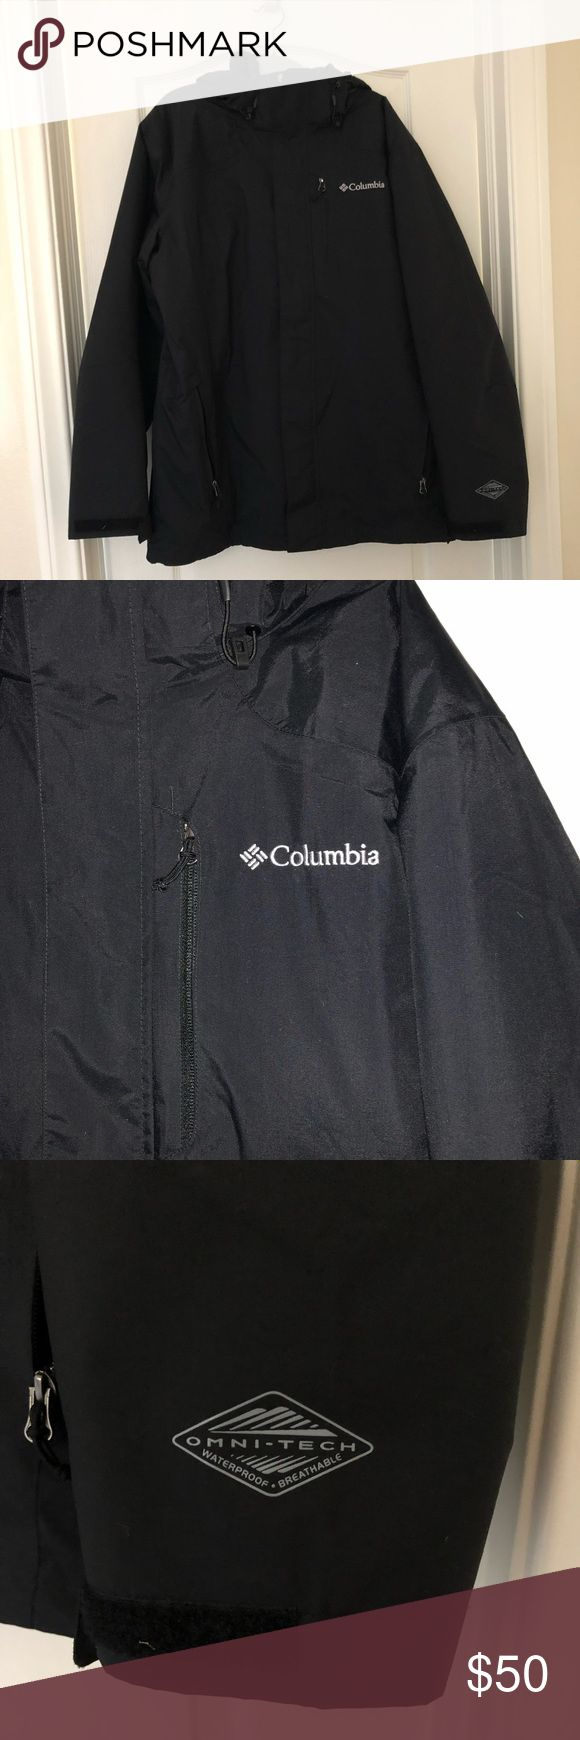 Columbia Element Blocker 3 in 1 interchange jacket ...